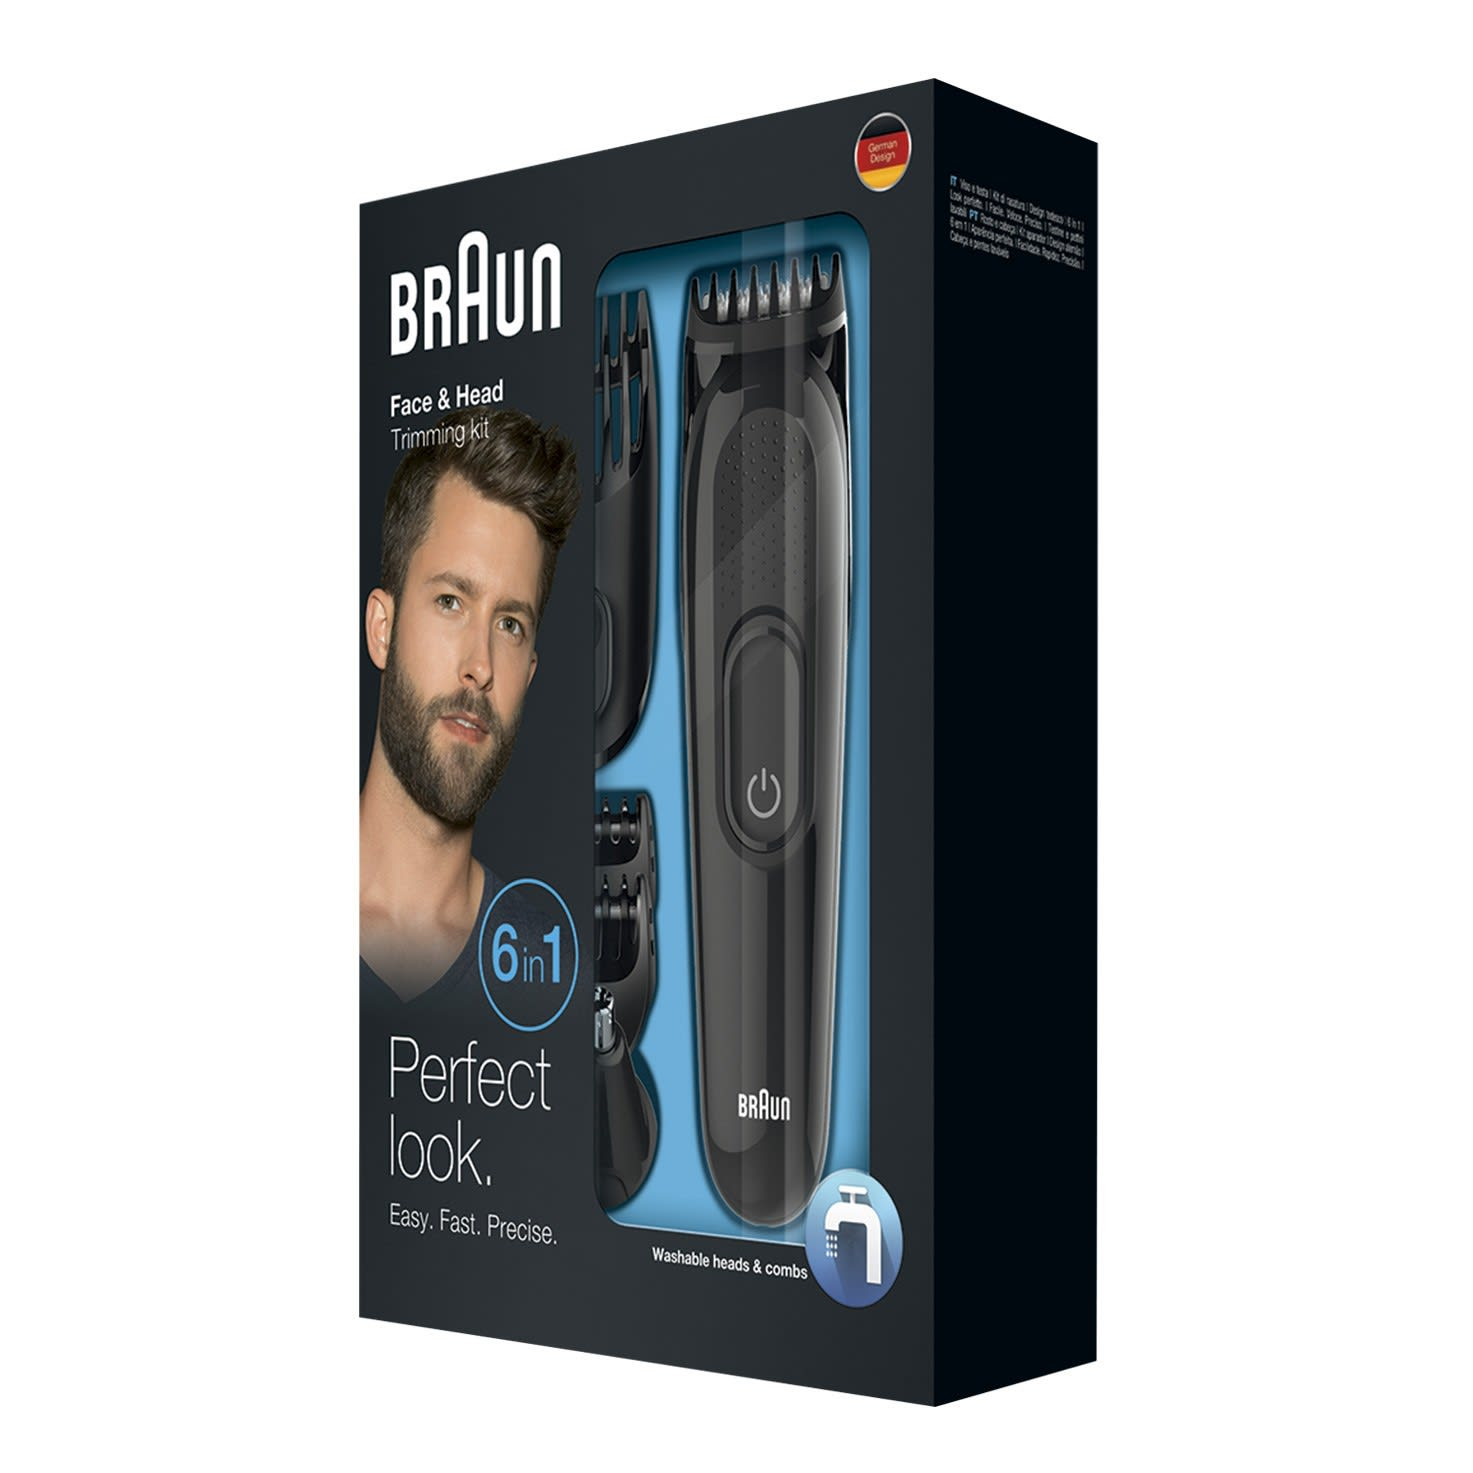 Braun multi grooming kit MGK3020 packaging